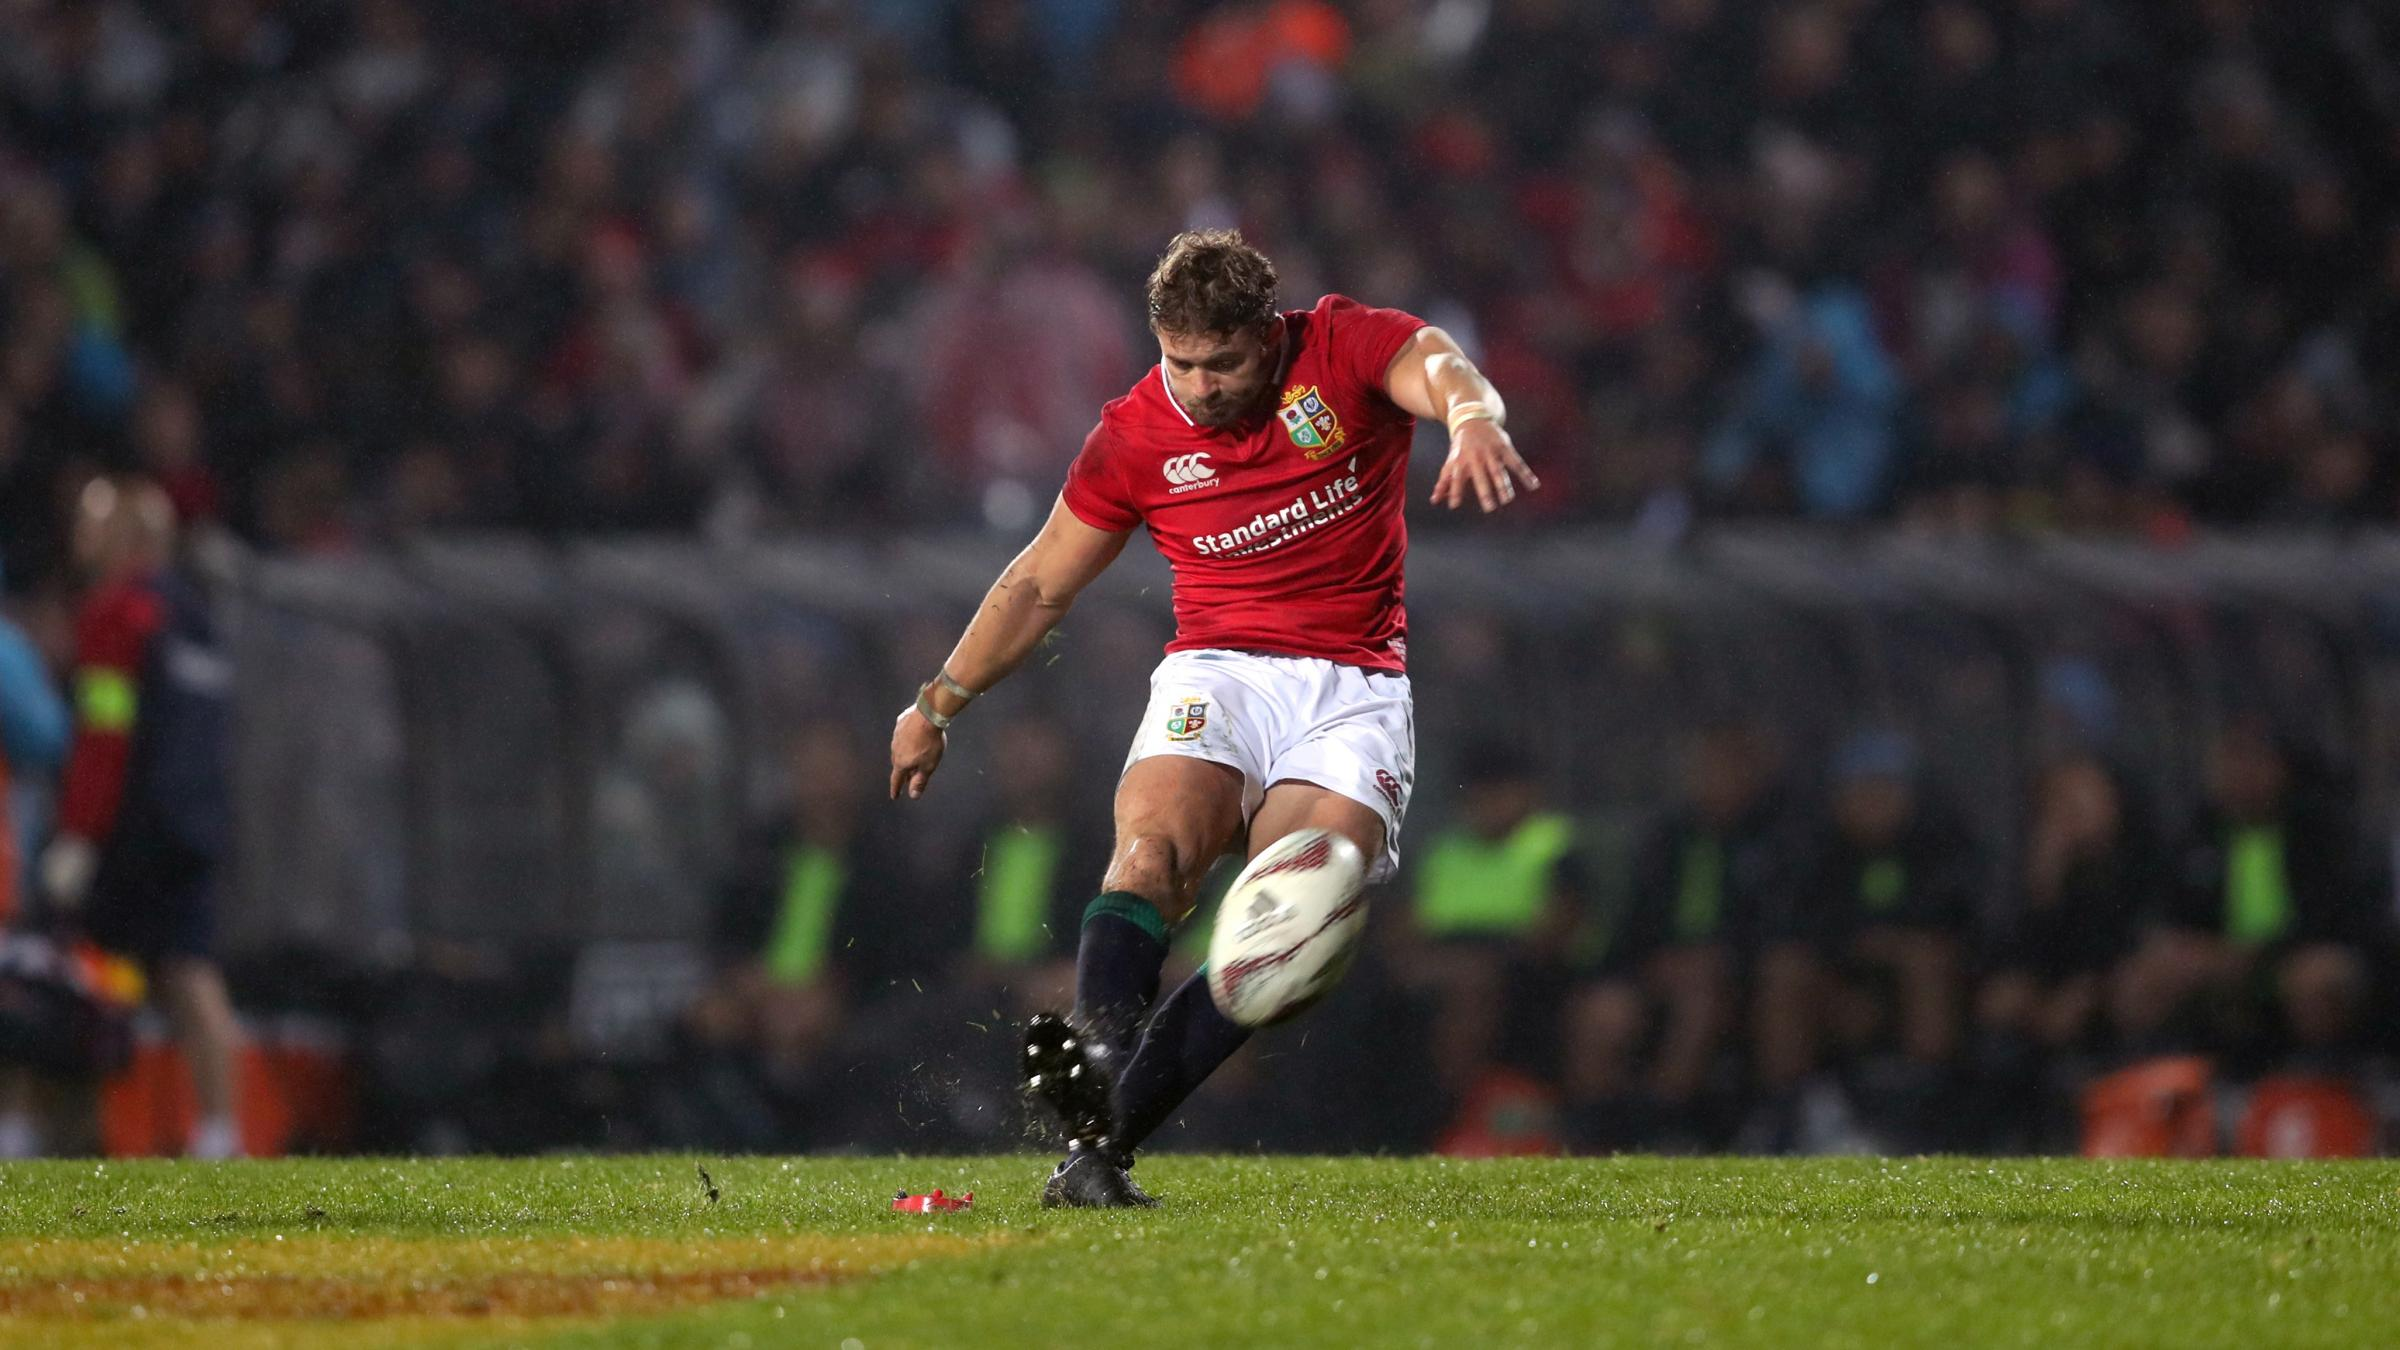 Lions outmuscle Maori to register morale-boosting win